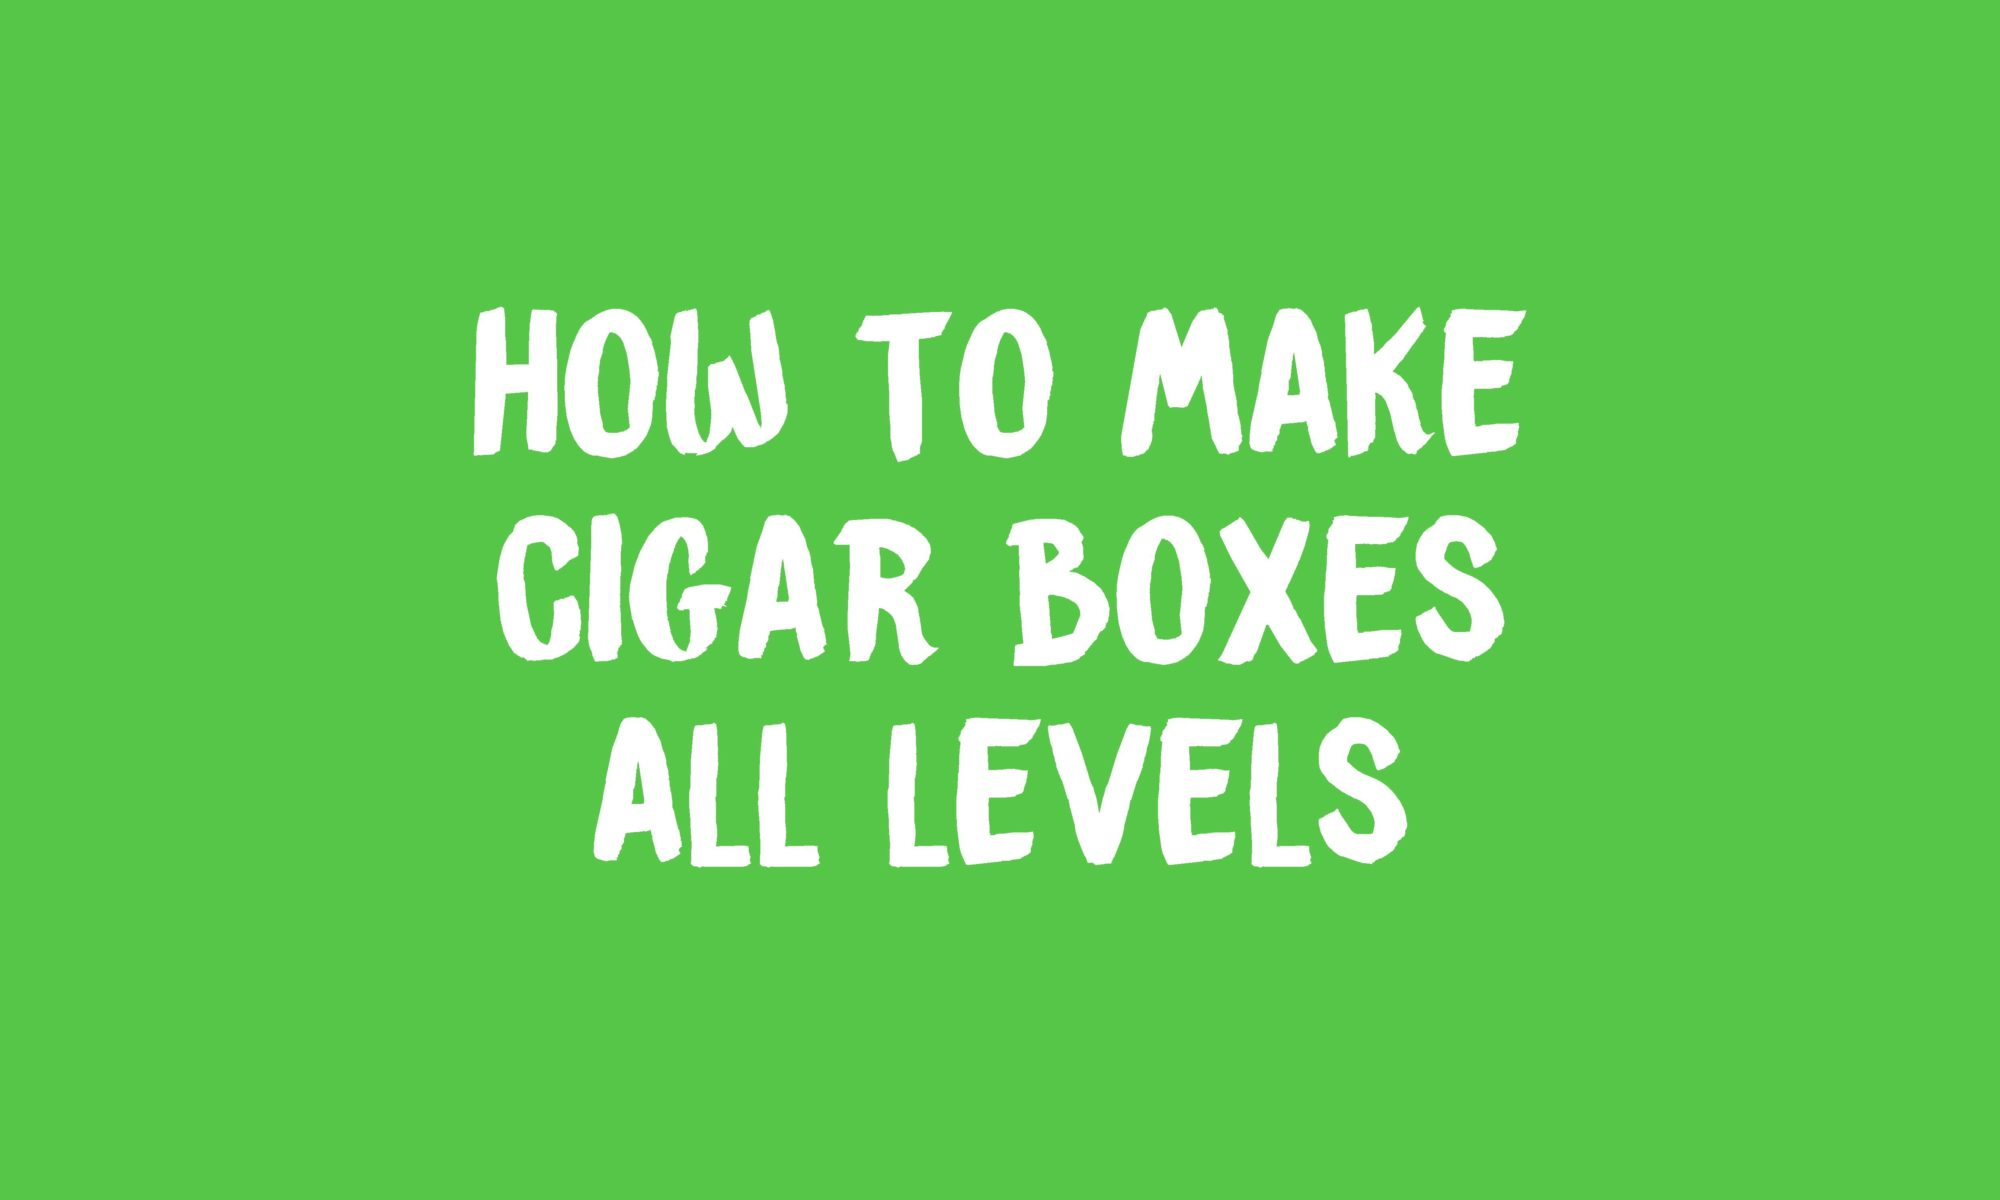 How To Make Cigar Boxes banner